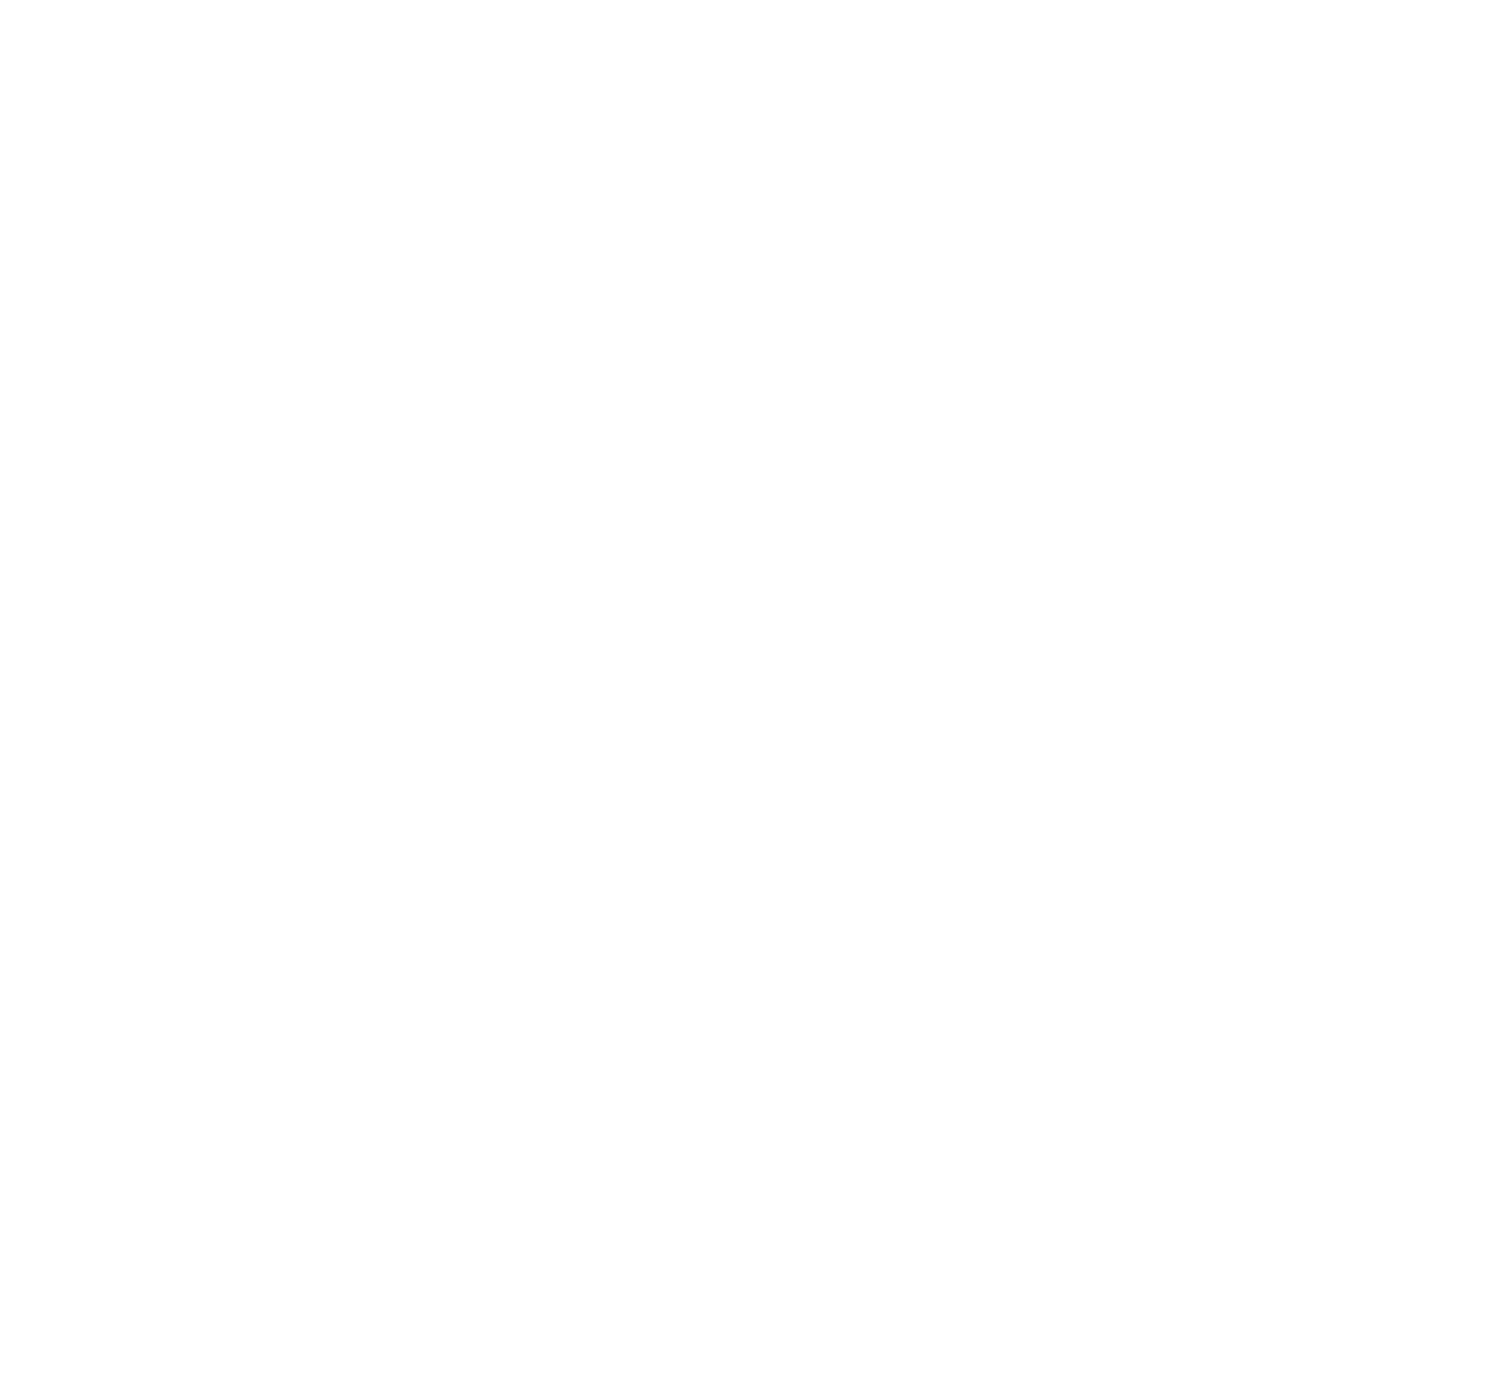 Tedco Enterprise